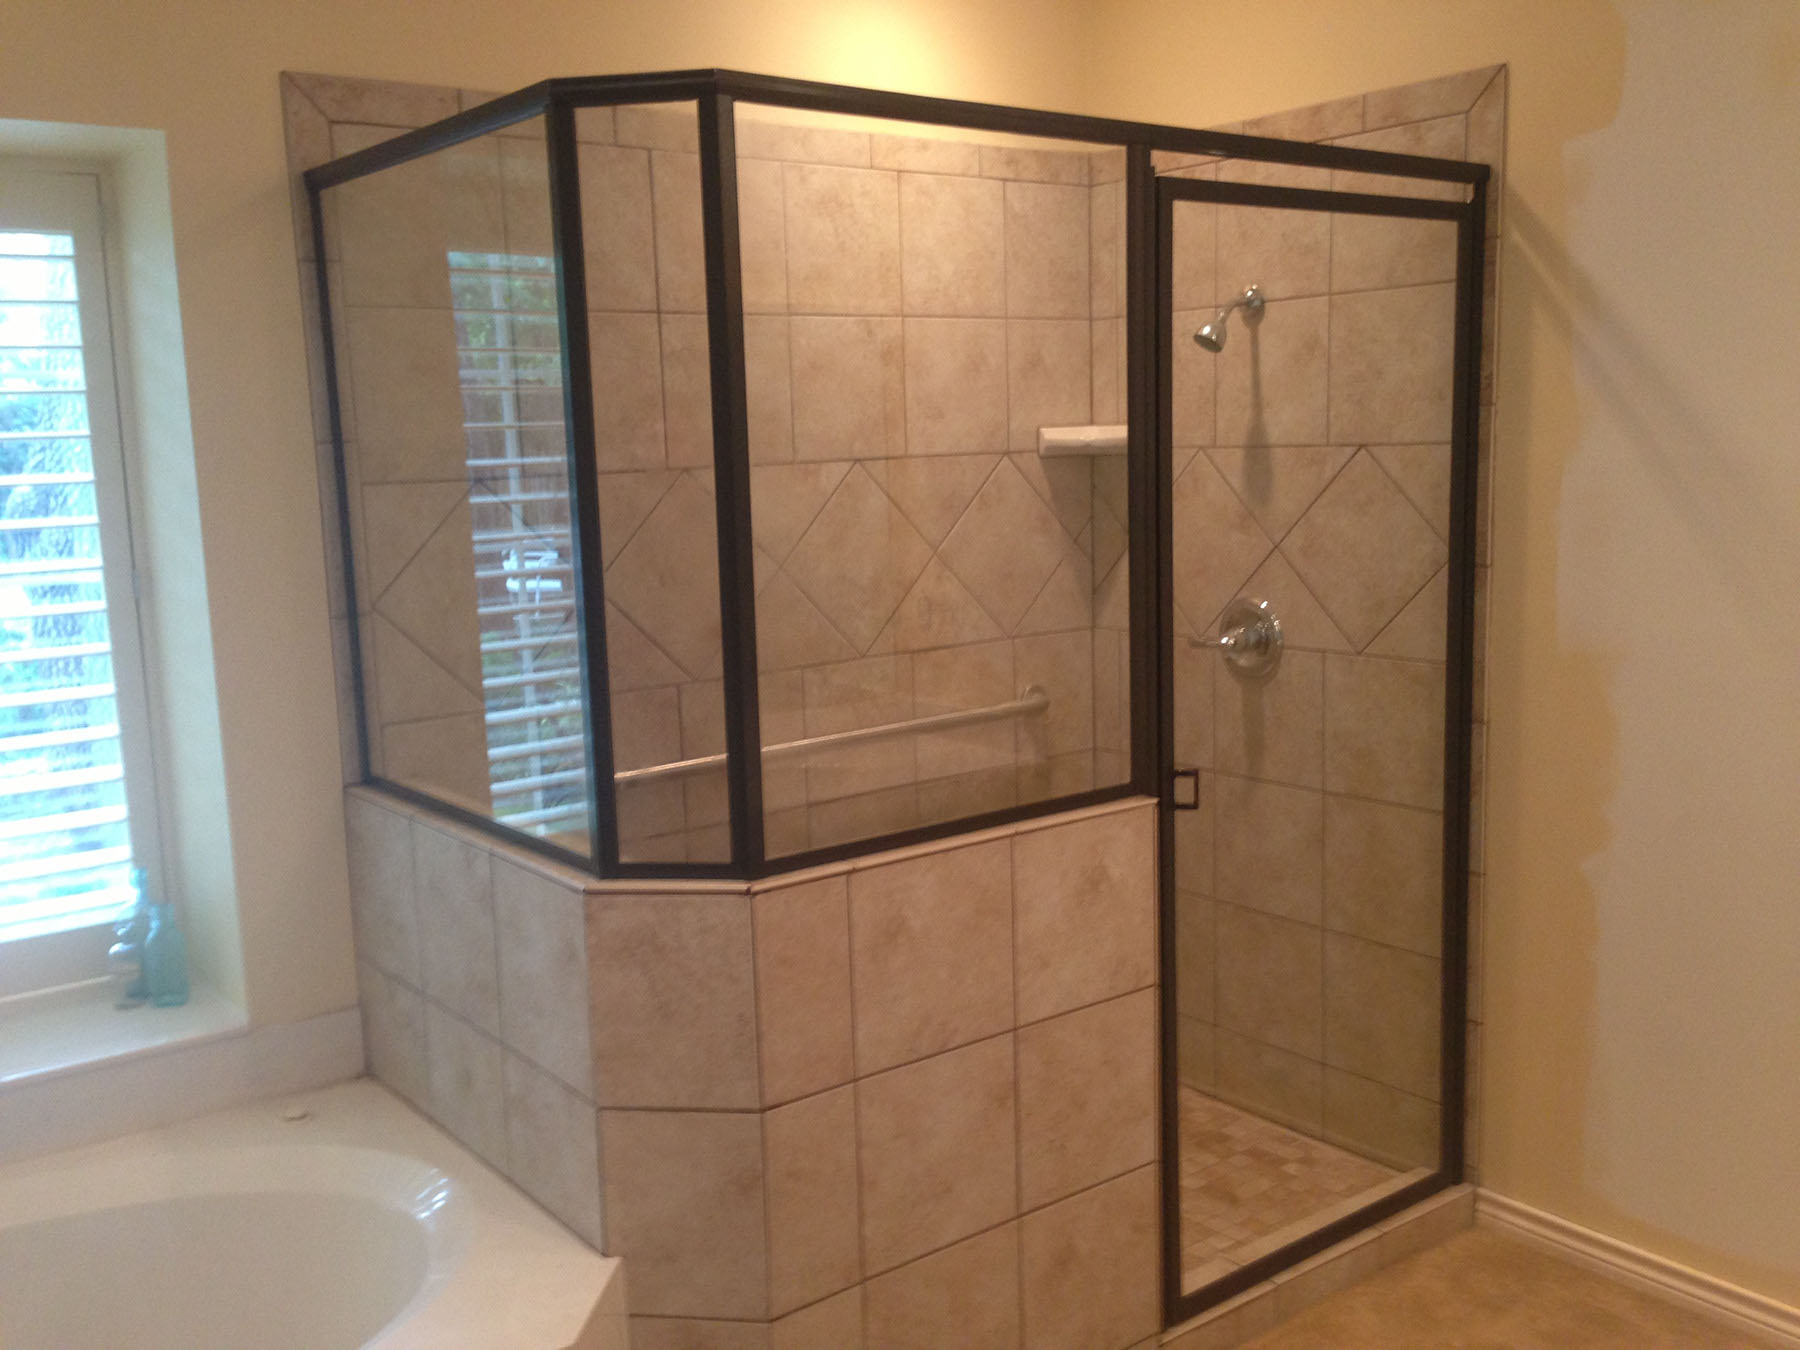 Denver shower glass save on shower glass semi frameless glass semi frameless glass shower doors denver co planetlyrics Choice Image